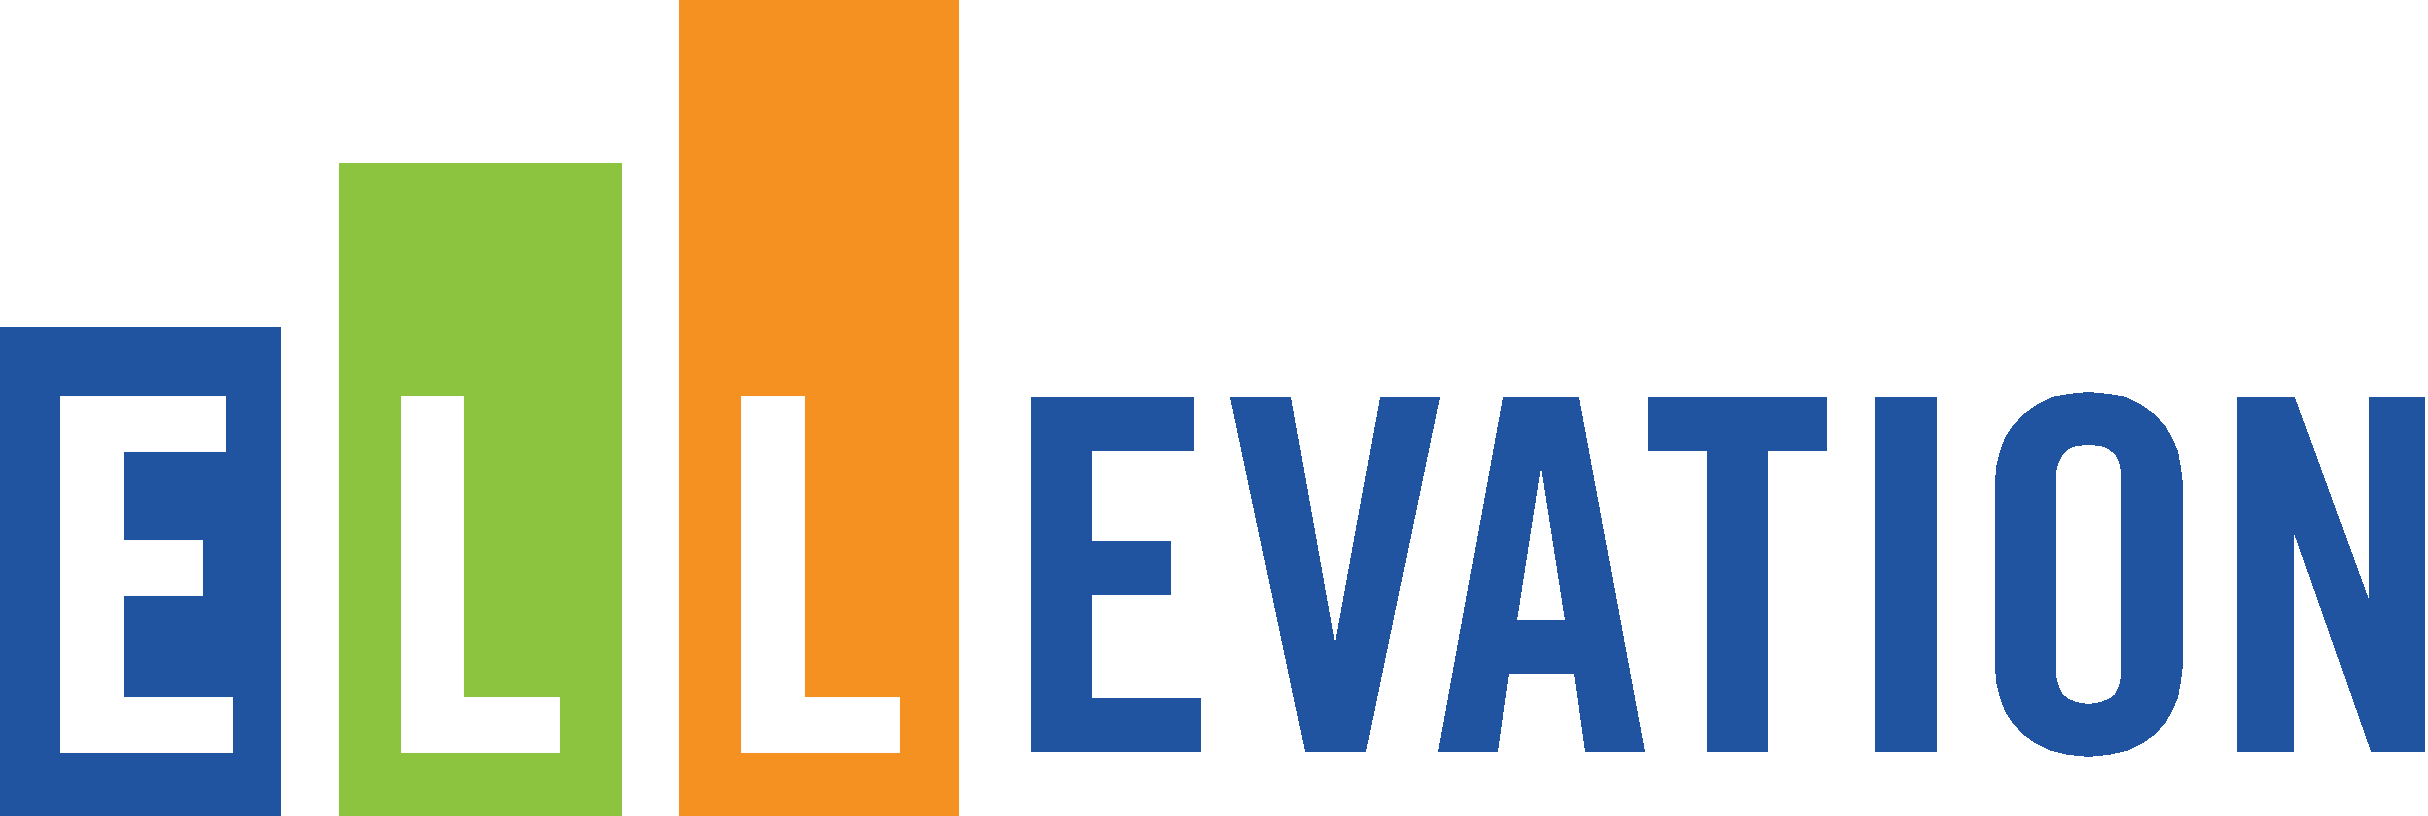 Ellevation logo